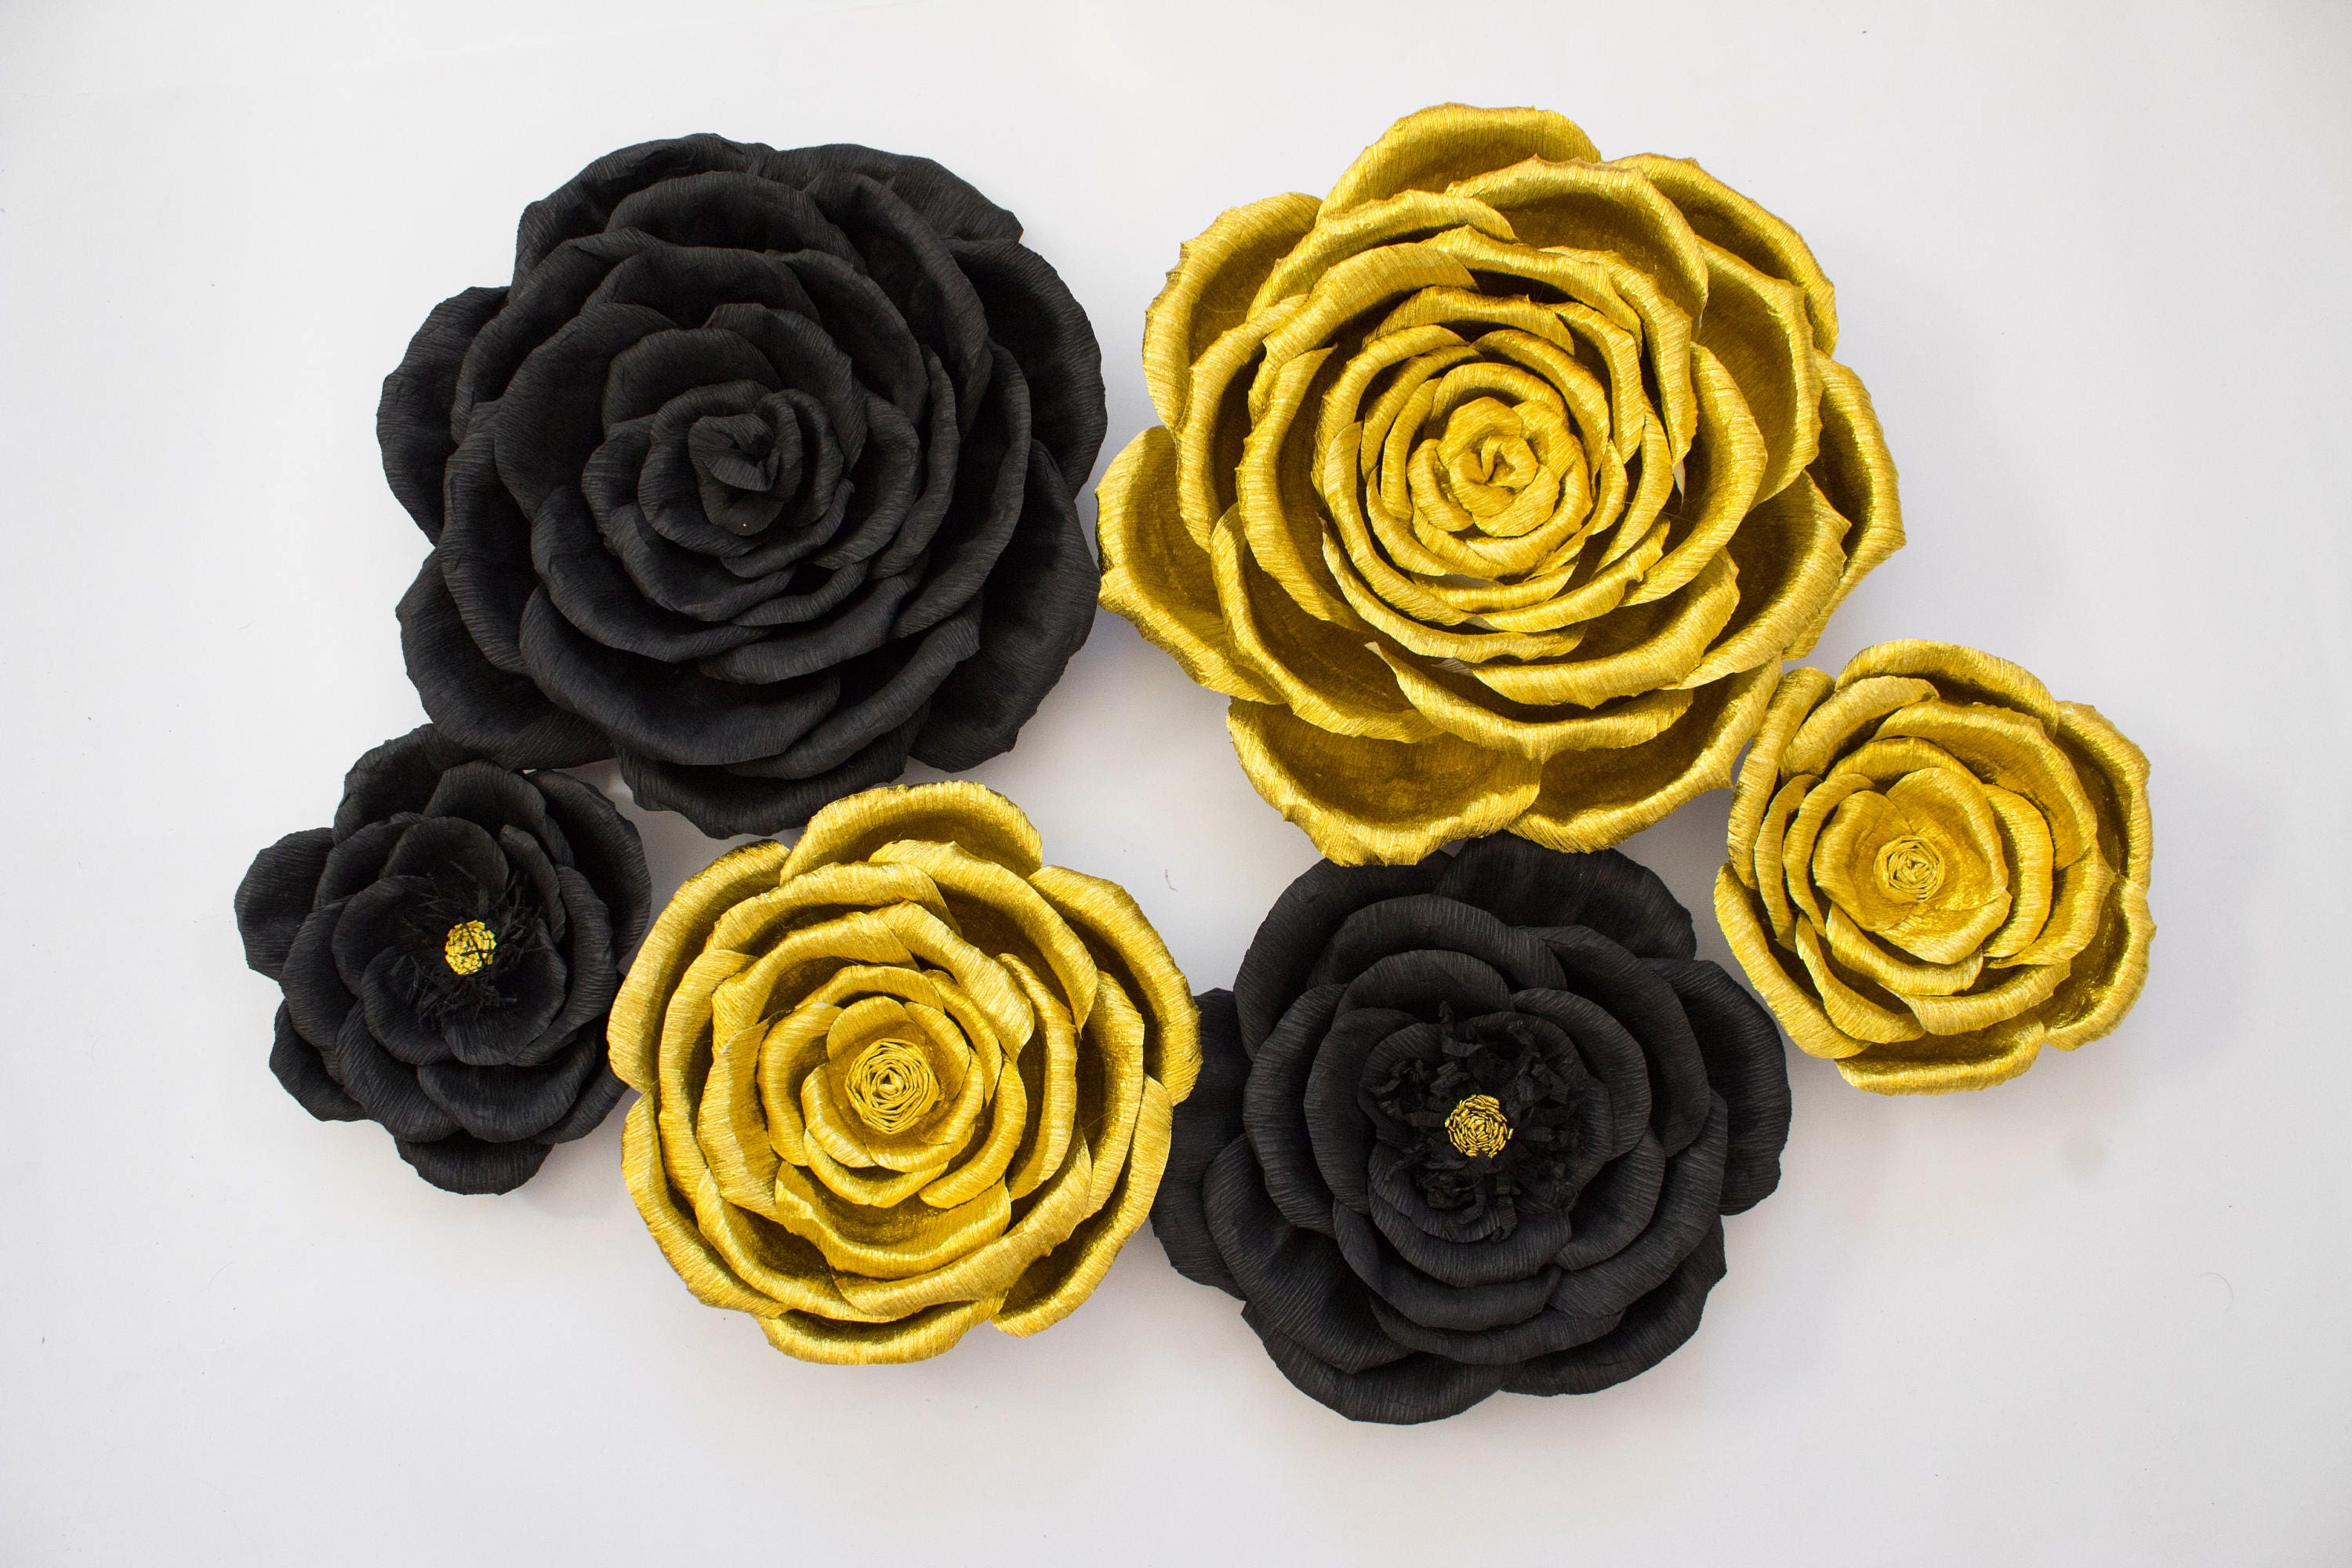 6 Gold And Black Giant Flowers Paper Flower Backdrop Graduation